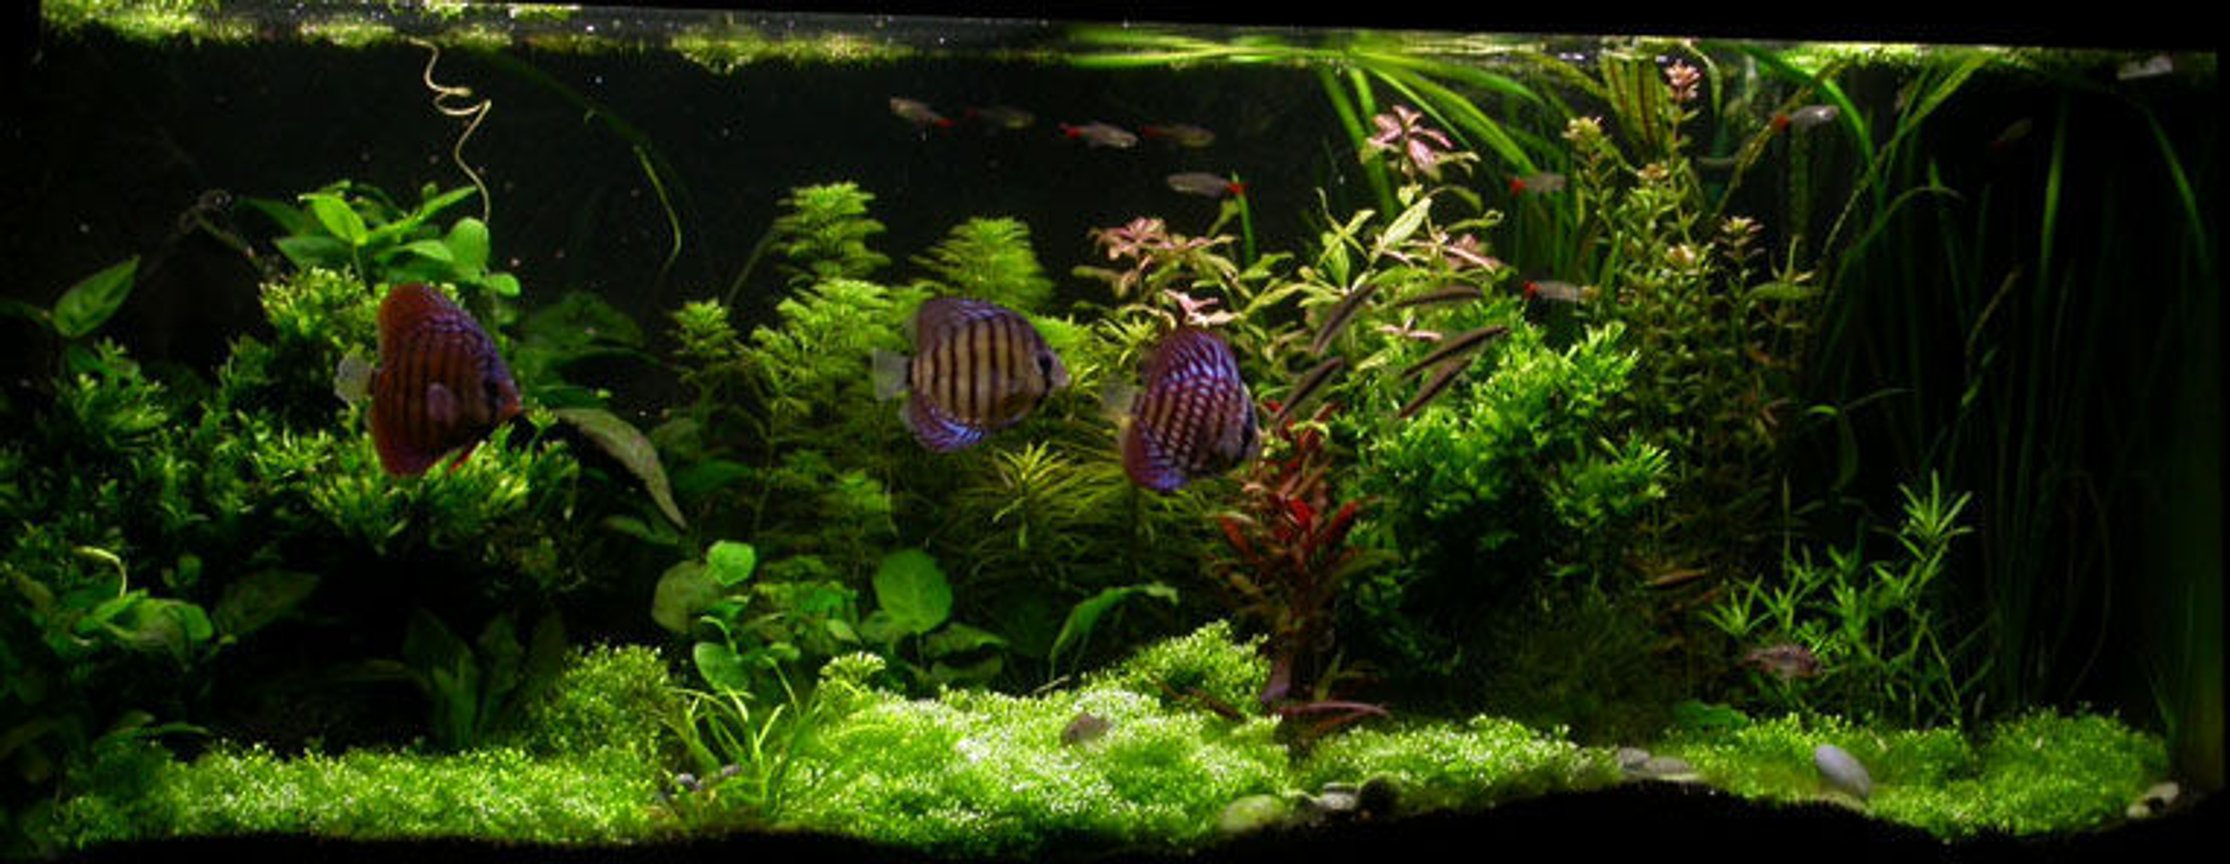 100 gallons planted tank (mostly live plants and fish) - ssssss